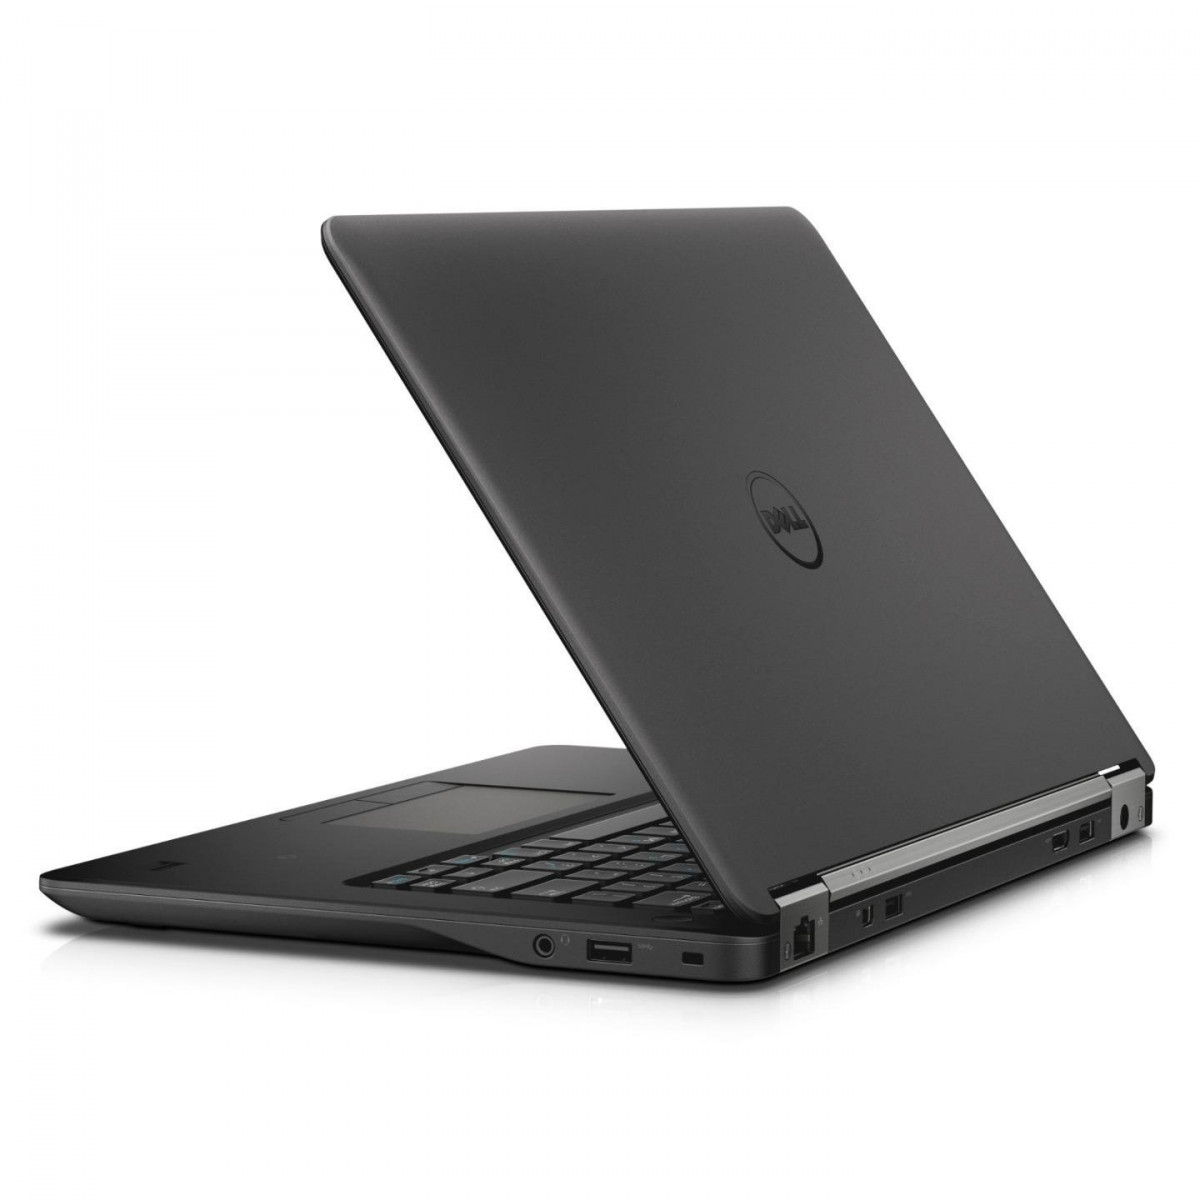 DELL Latitude E7240 ( Core i7 4600u RAM 4GB SSD 256GB VGA 12.5 Inch HD)